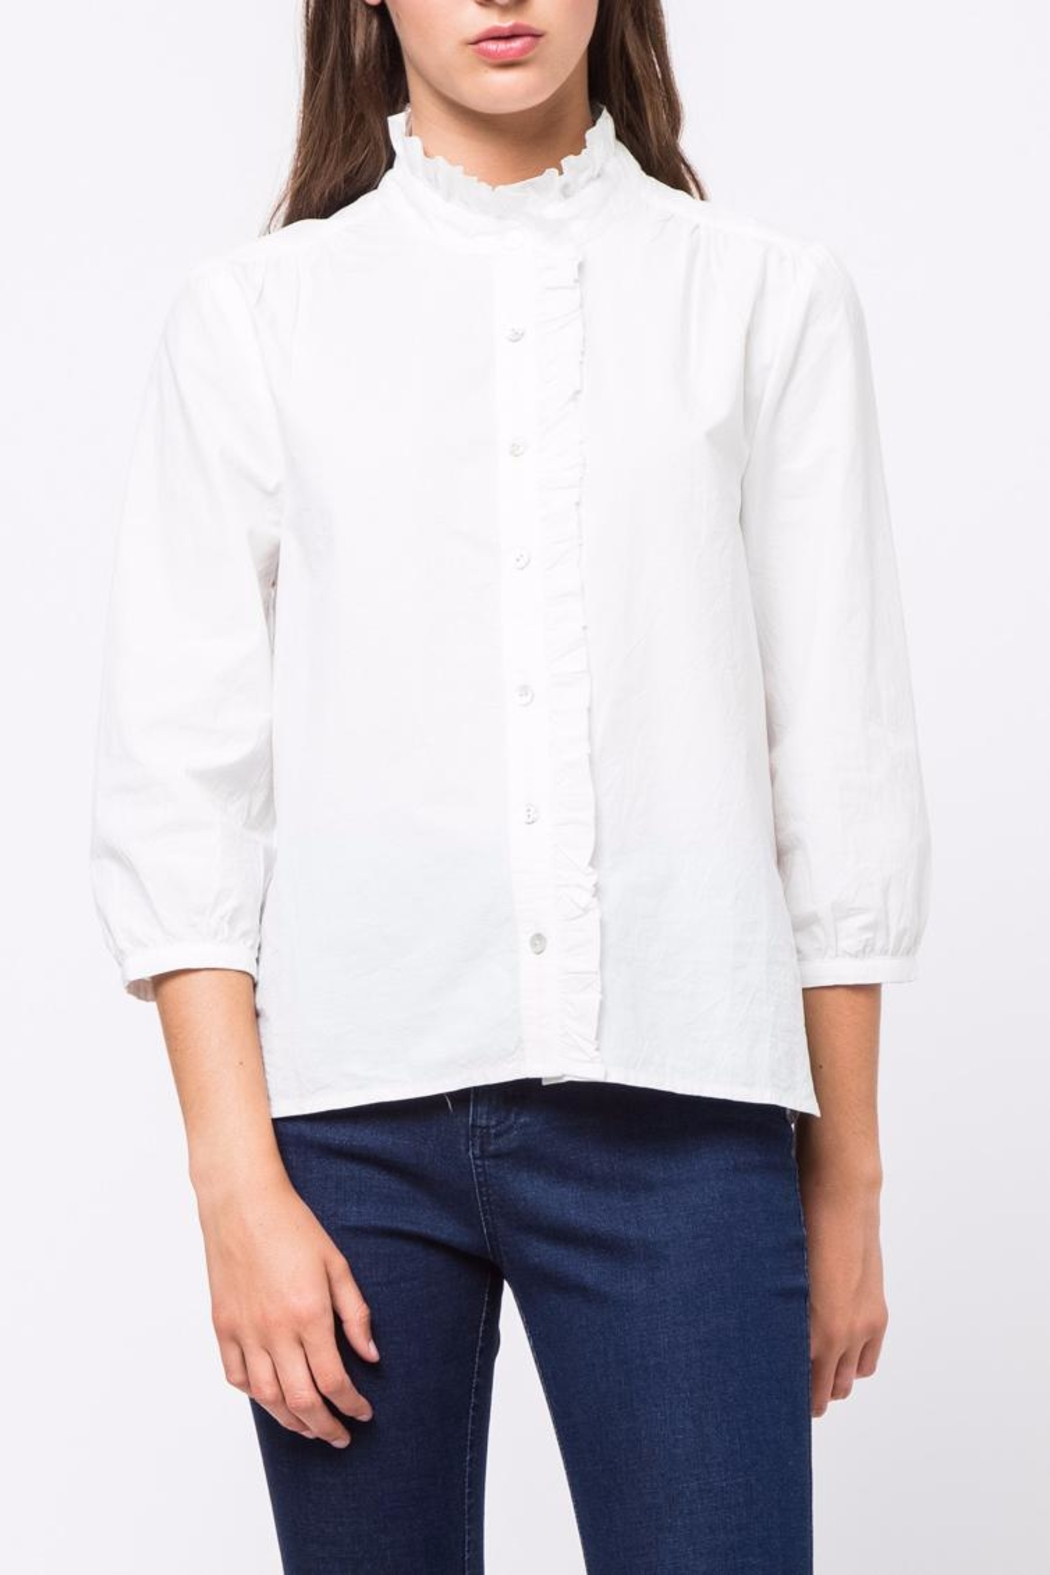 Movint Pleated-Collared-Detailed Top - Main Image